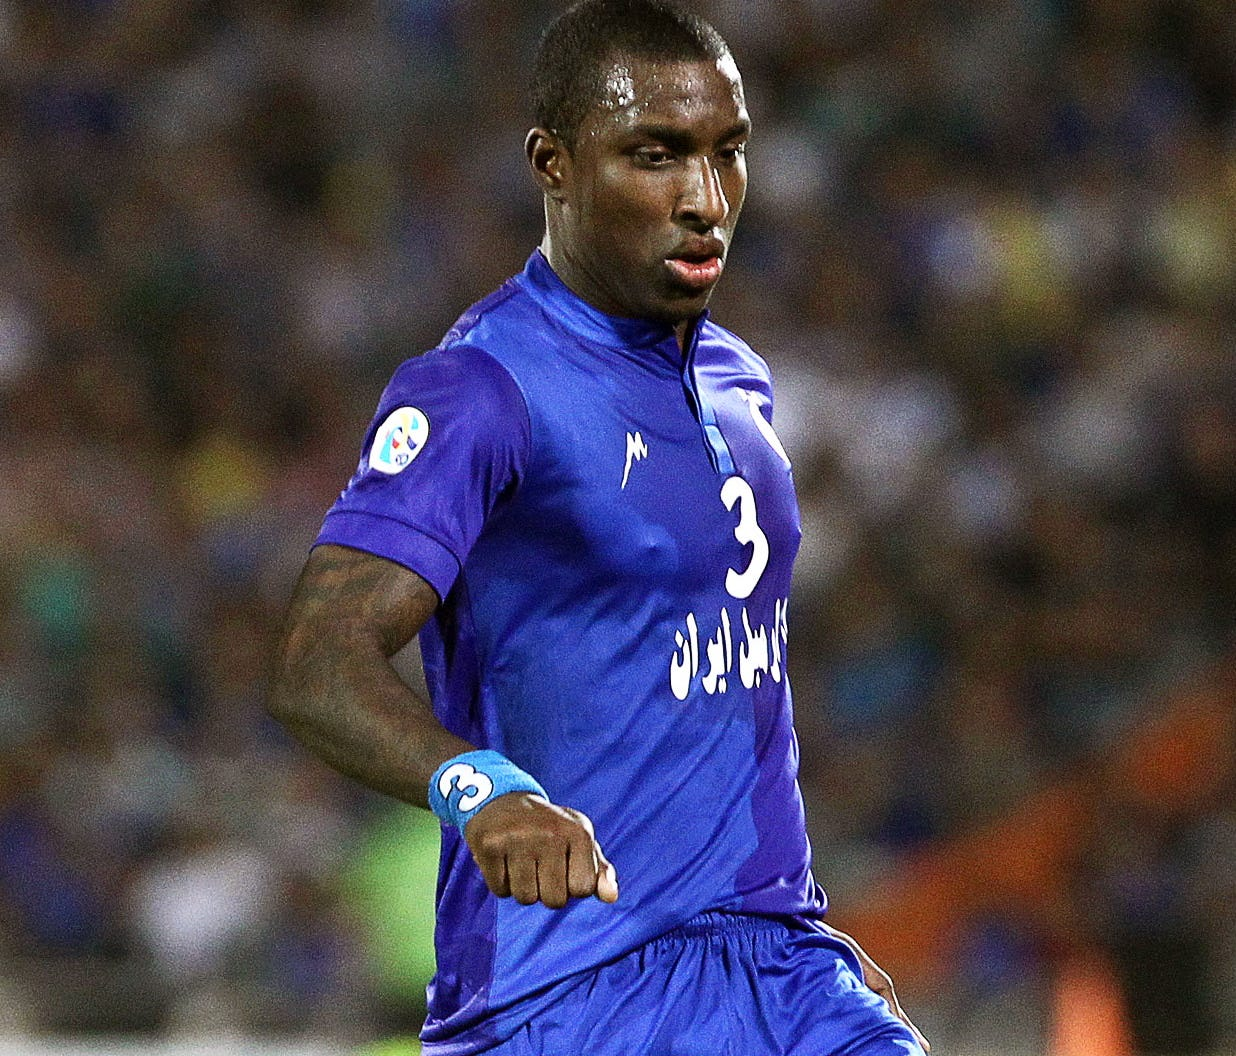 Esteghlal's midfielder Jlloyd Samuel in action during the AFC Champions League semi final soccer match between FC Esteghlal and FC Seoul at Azadi stadium in Tehran, Iran, in 2013.. Former Trinidadian soccer player Jlloyd Samuel has died in a car cras